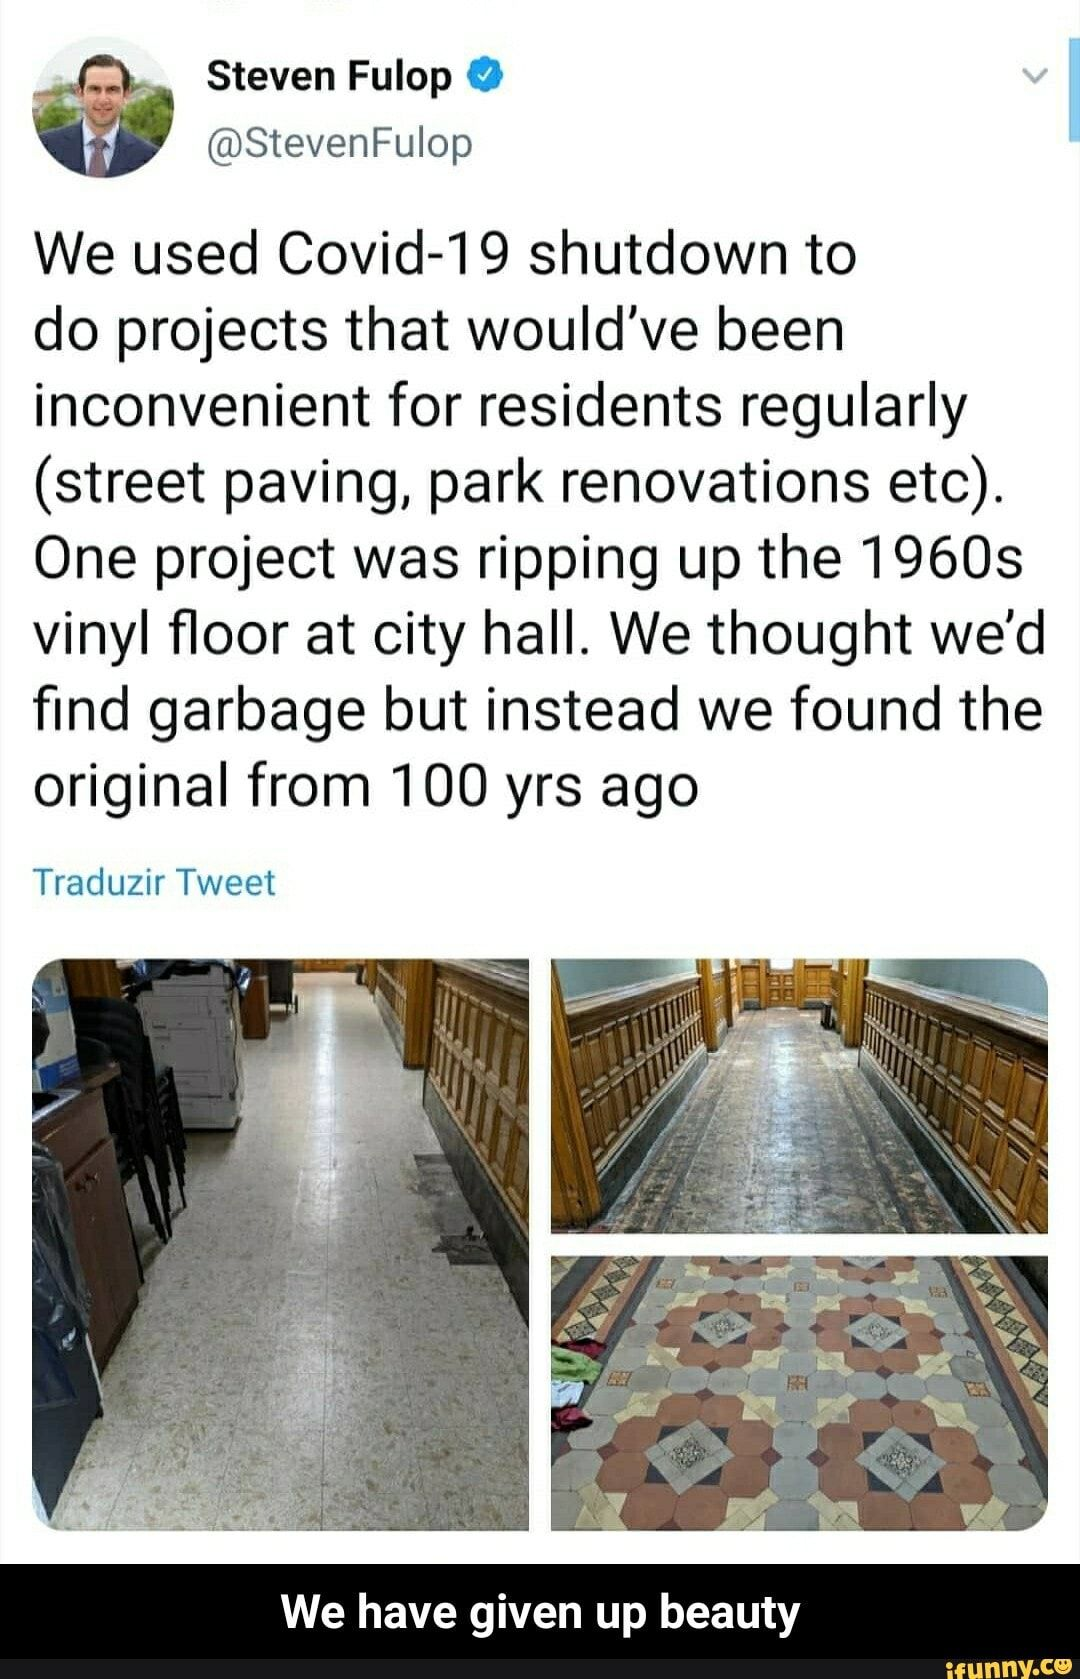 We used Covid-19 shutdown to do projects that would've been inconvenient for residents regularly (street paving, park renovations etc). One project was ripping up the 1960s vinyl floor at city hall. We thought we'd find garbage but instead we found the original from 100 yrs ago Traduzir Tweet We have given up beauty - We have given up beauty - )